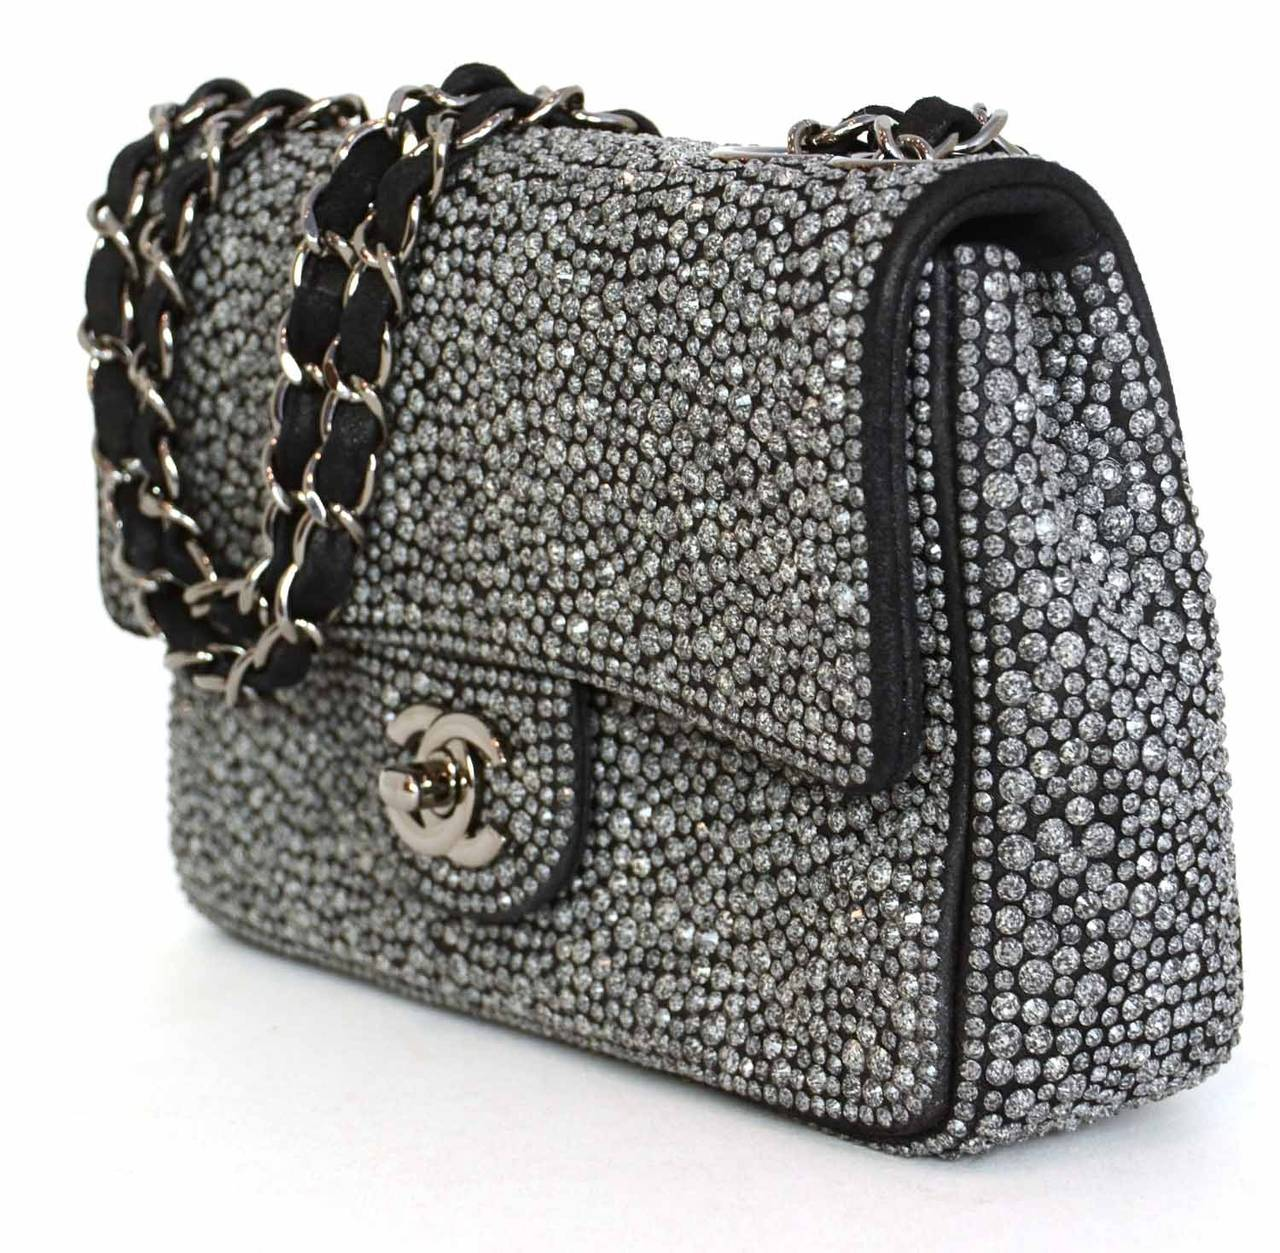 CHANEL 2014 Dark Grey Crystal Mini Flap Bag